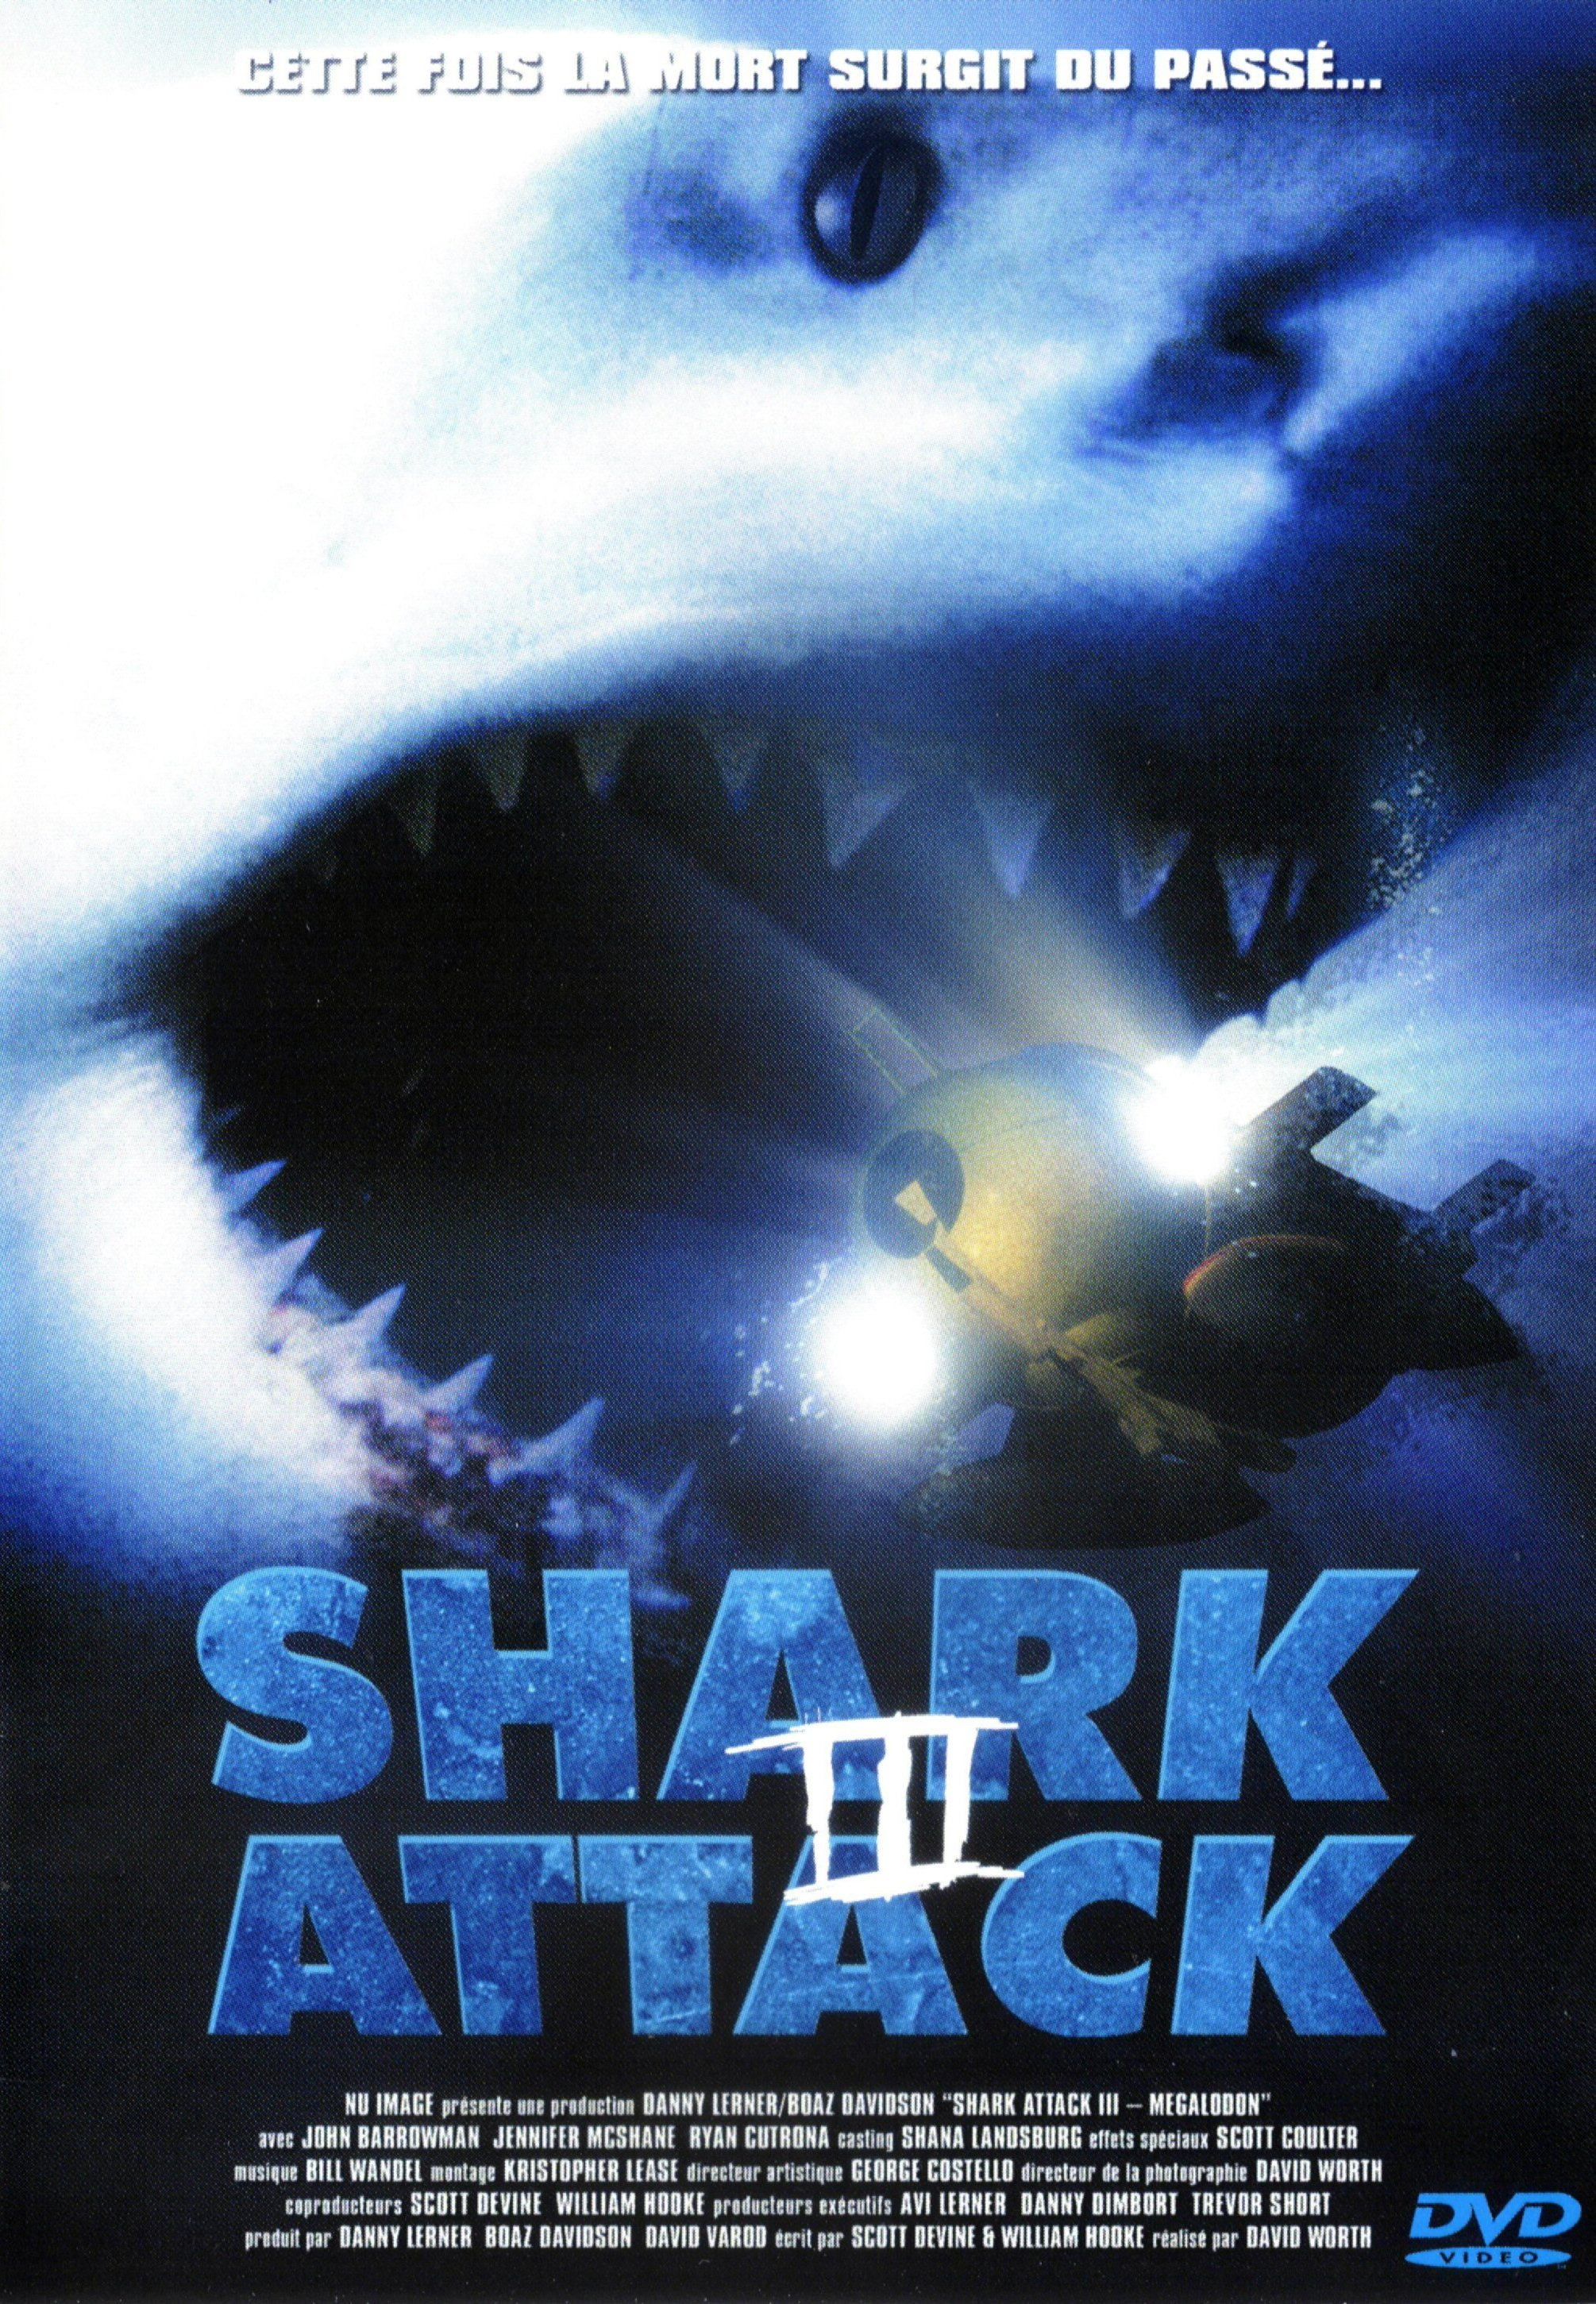 affiche du film Shark Attack III